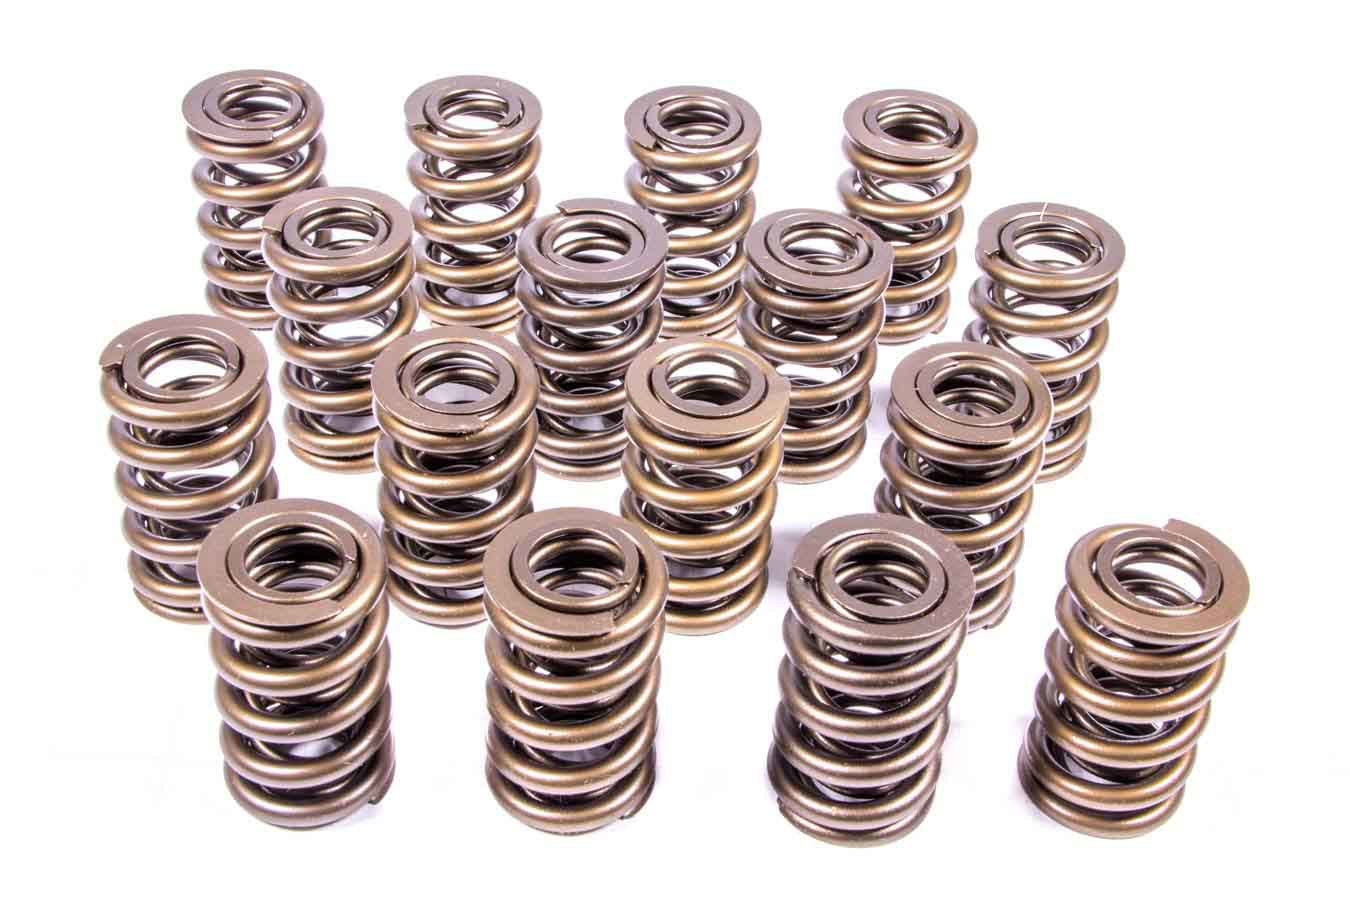 PAC Racing Springs PAC-1202 Valve Spring, 1200 Series, Dual Spring, 540 lb/in Spring Rate, 1.100 in Coil Bind, 1.244 in OD, Set of 16